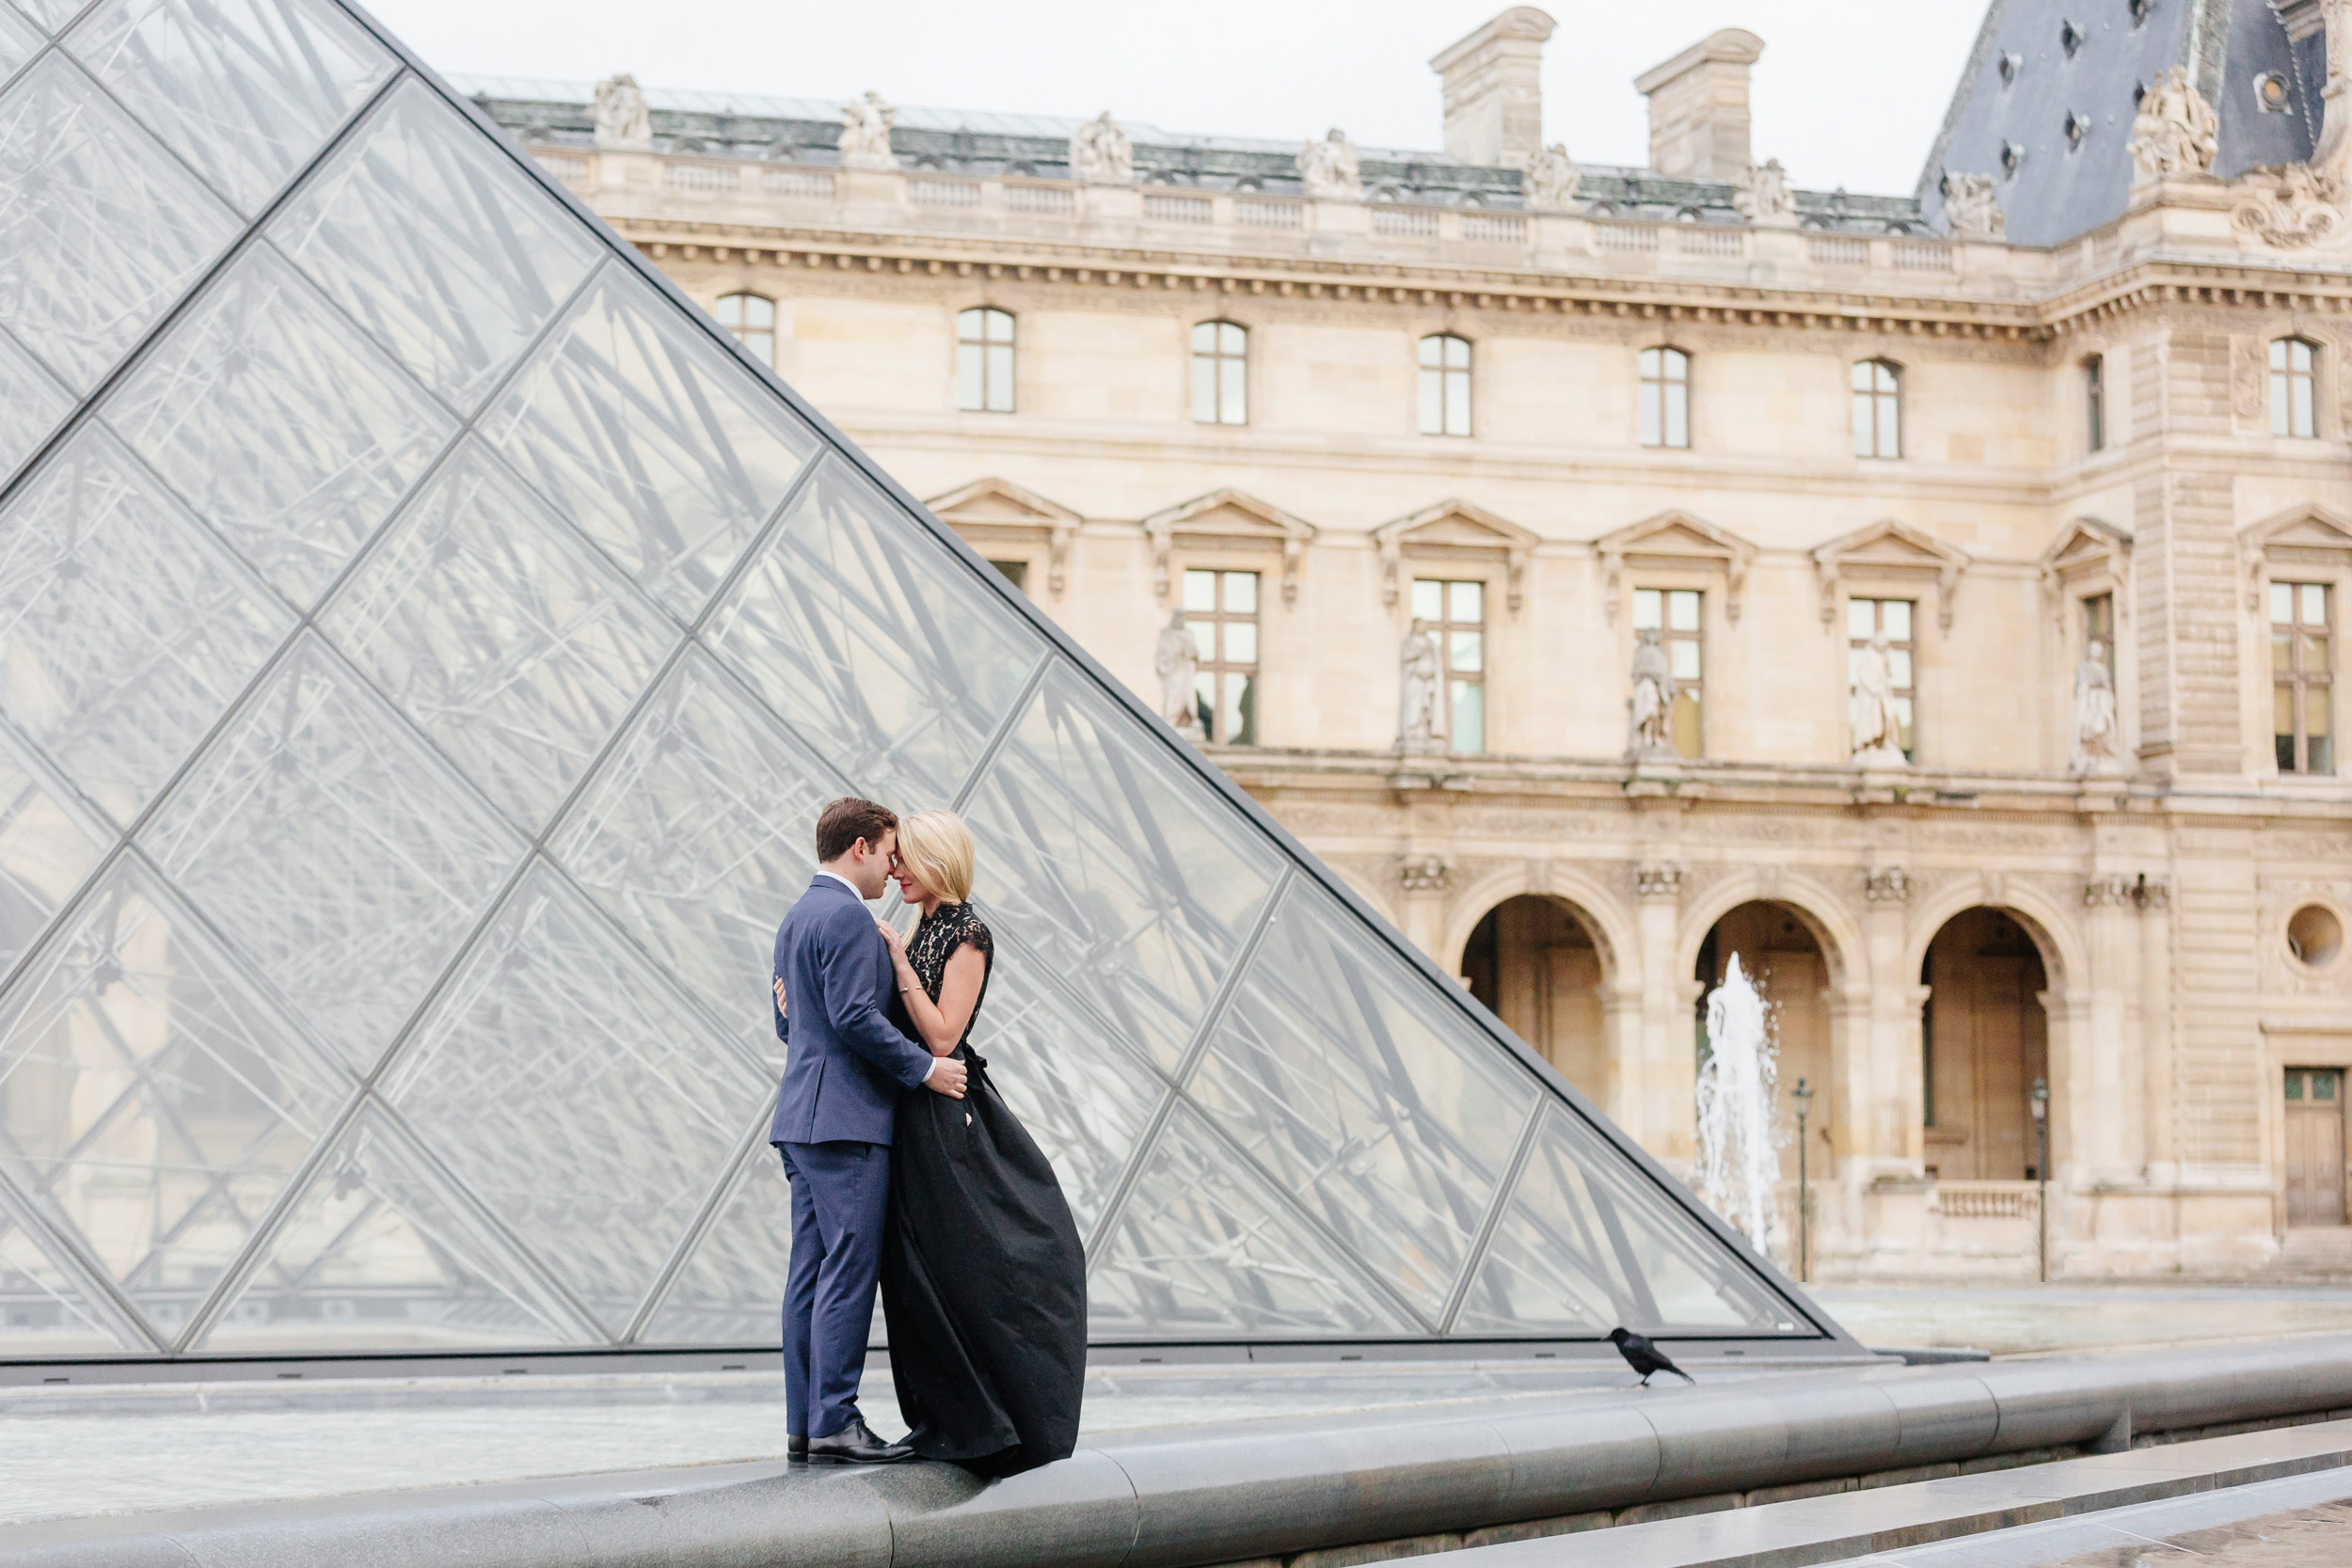 Paris vacation couple portrait hugging by Louvre Museum Pyramid captured by Paris Photographer Federico Guendel www.iheartparis.fr